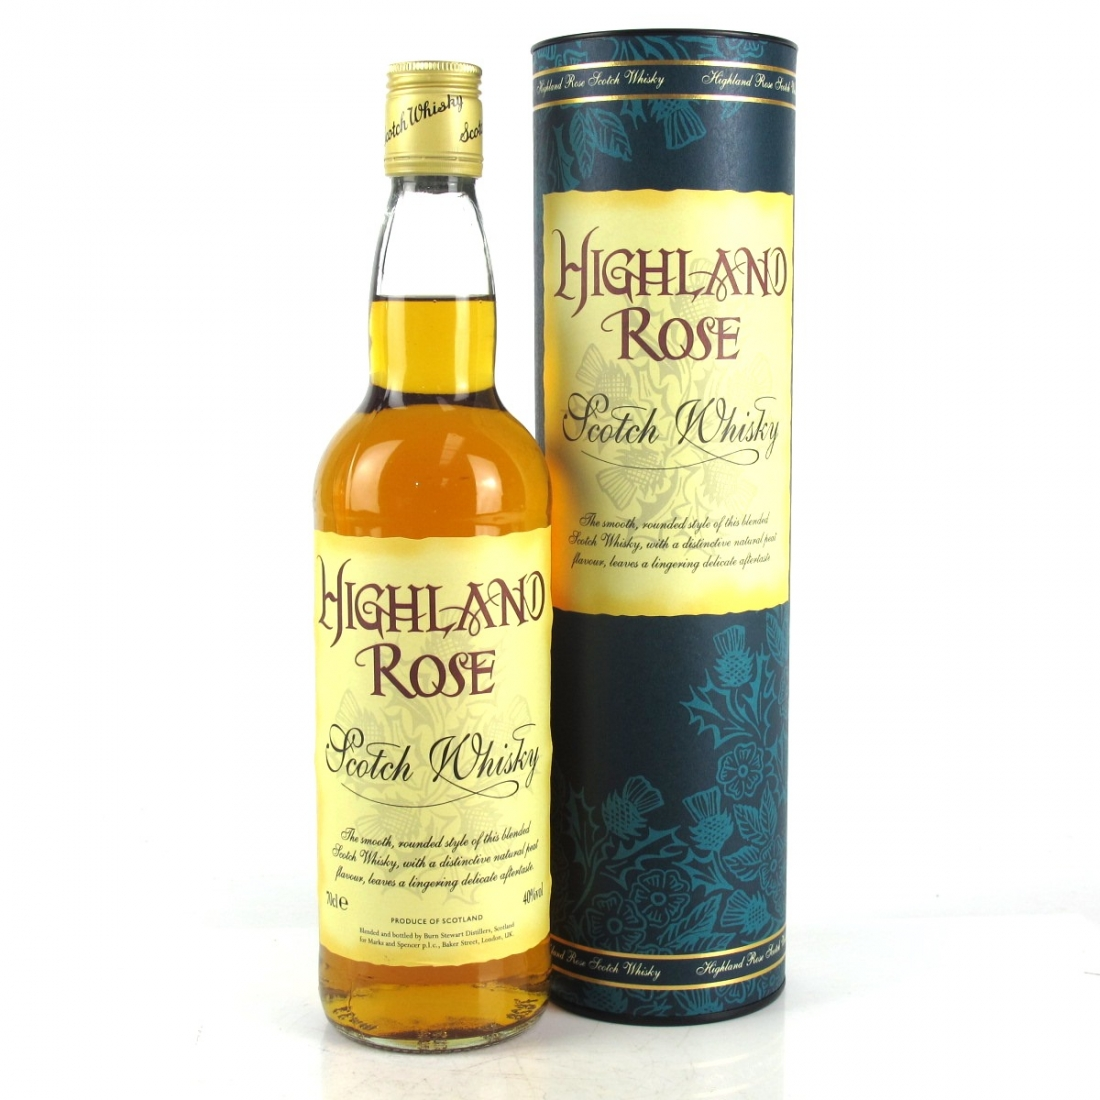 Highland Rose Fine Old Scotch Whisky